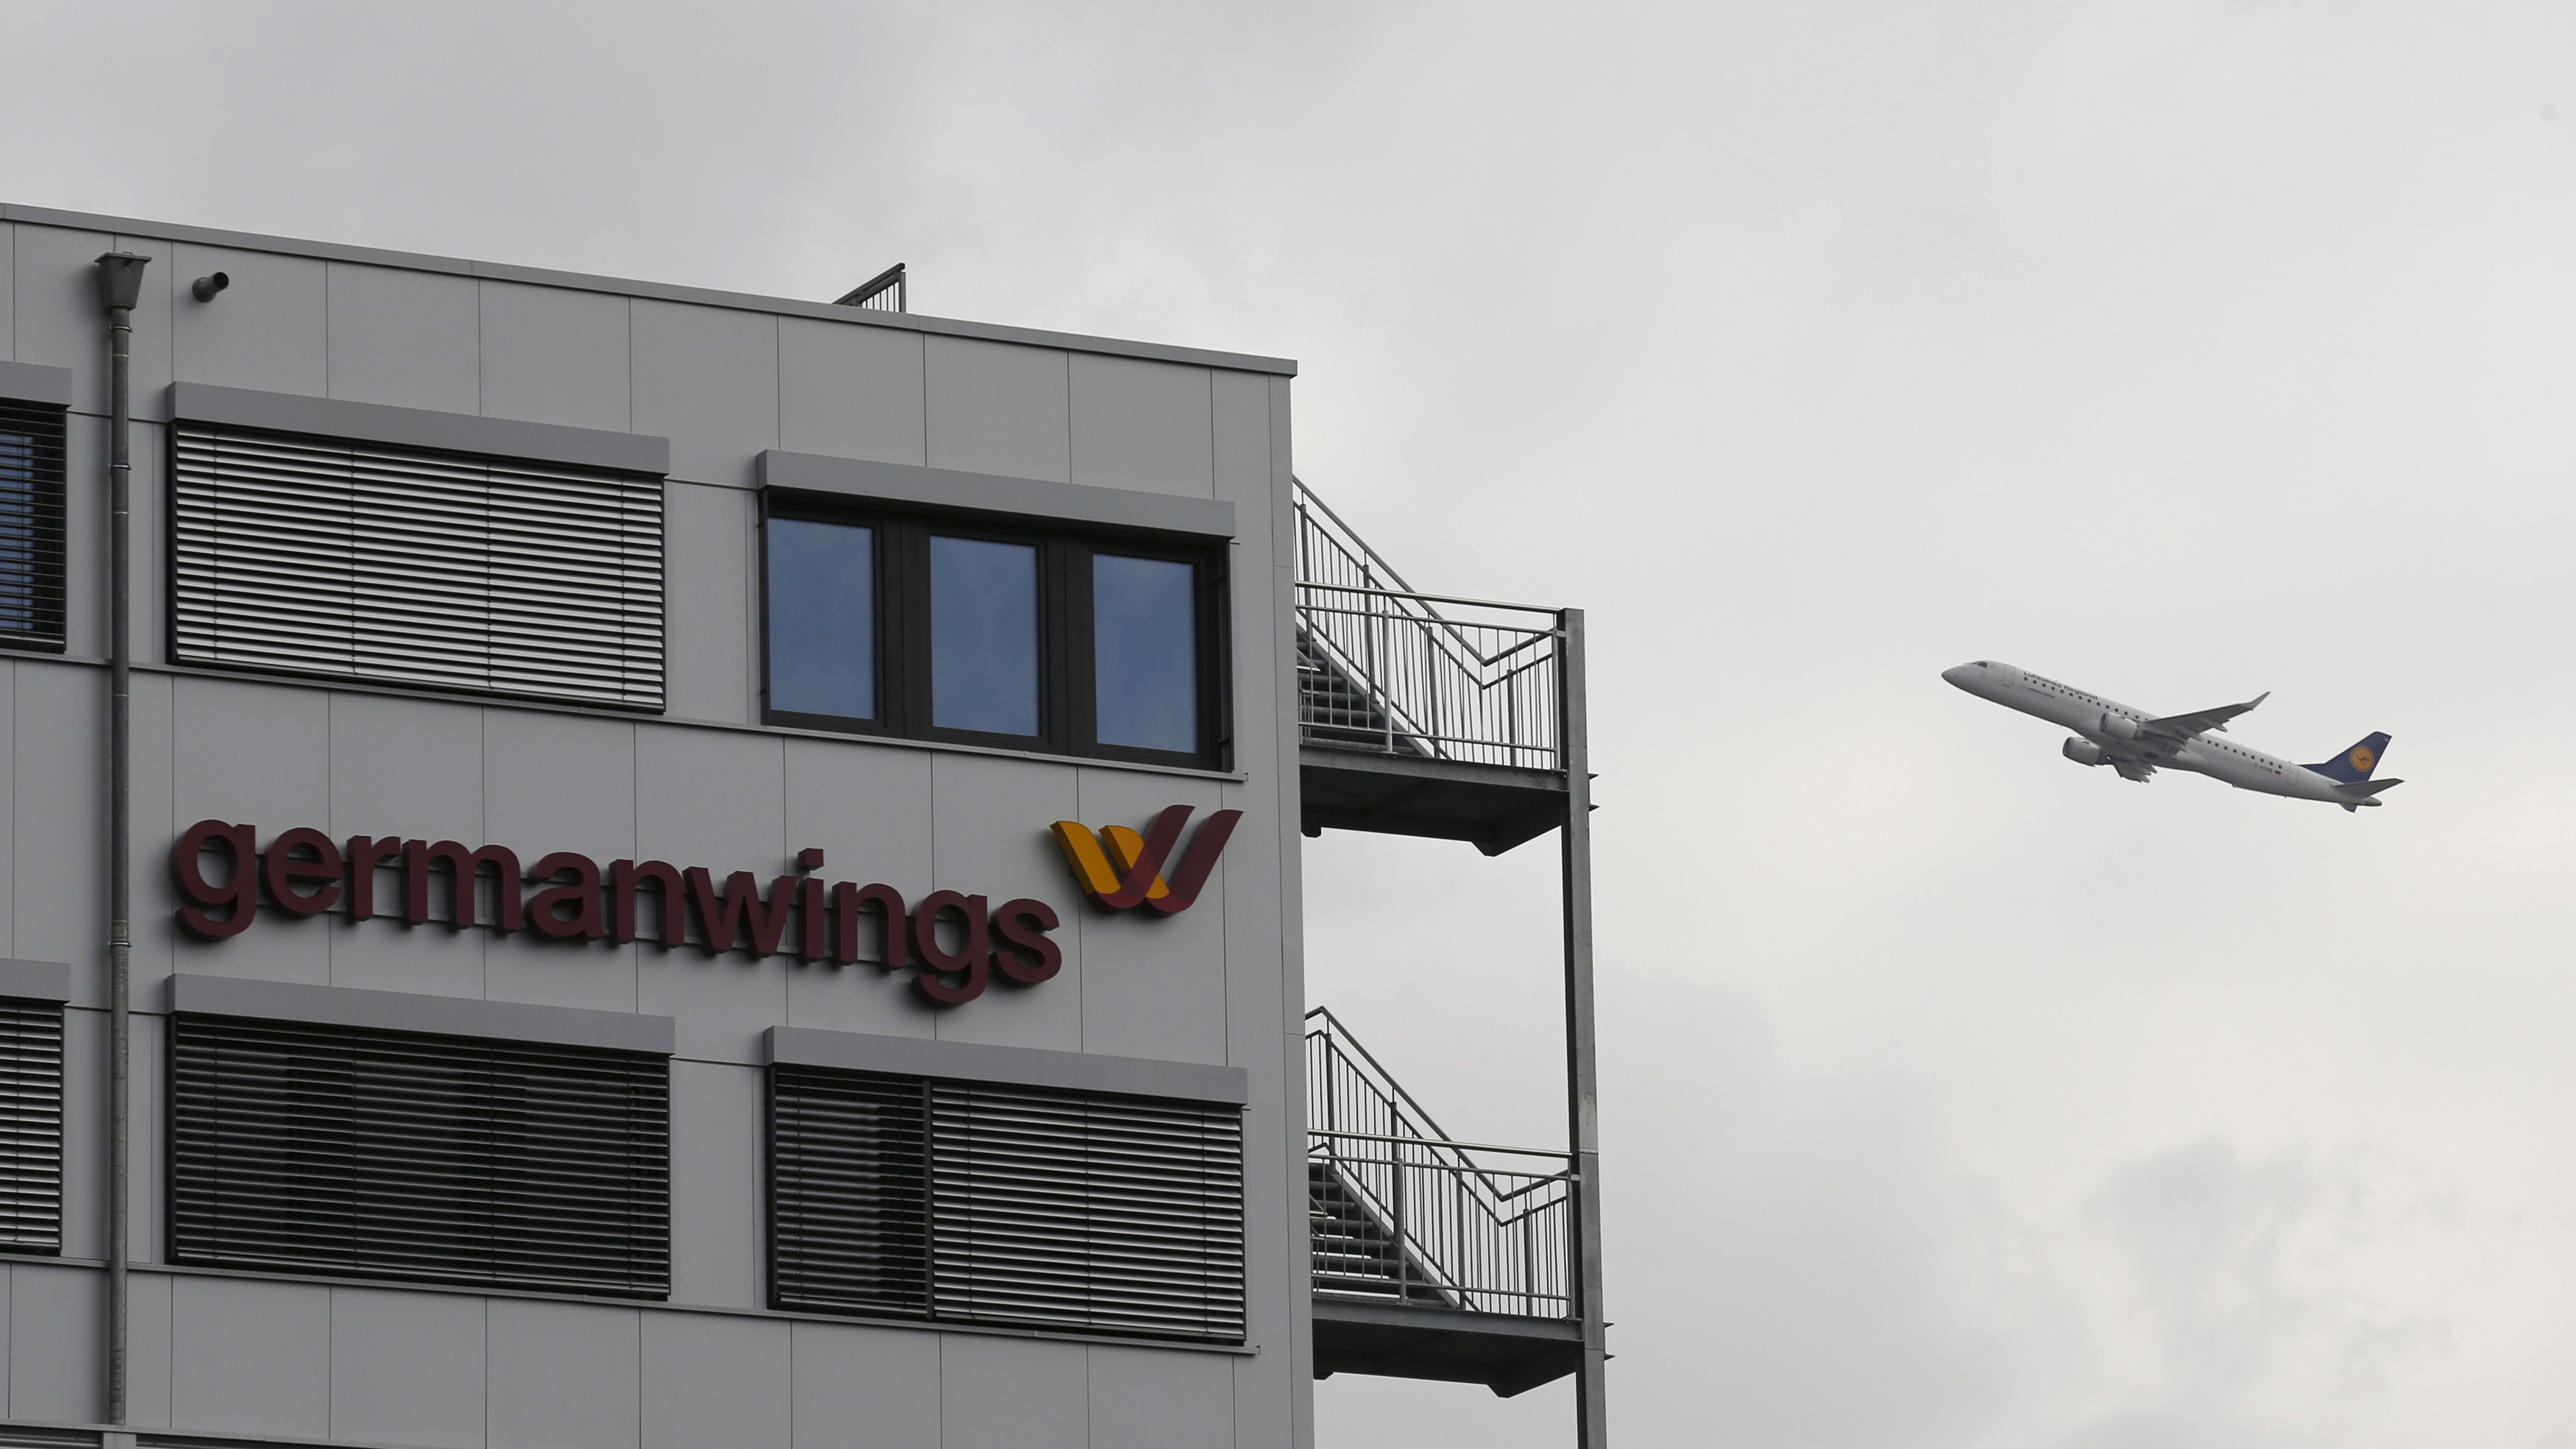 planeA Lufthansa aircraft flies past the headquarters of Germanwings during take-off from Cologne-Bonn airport.